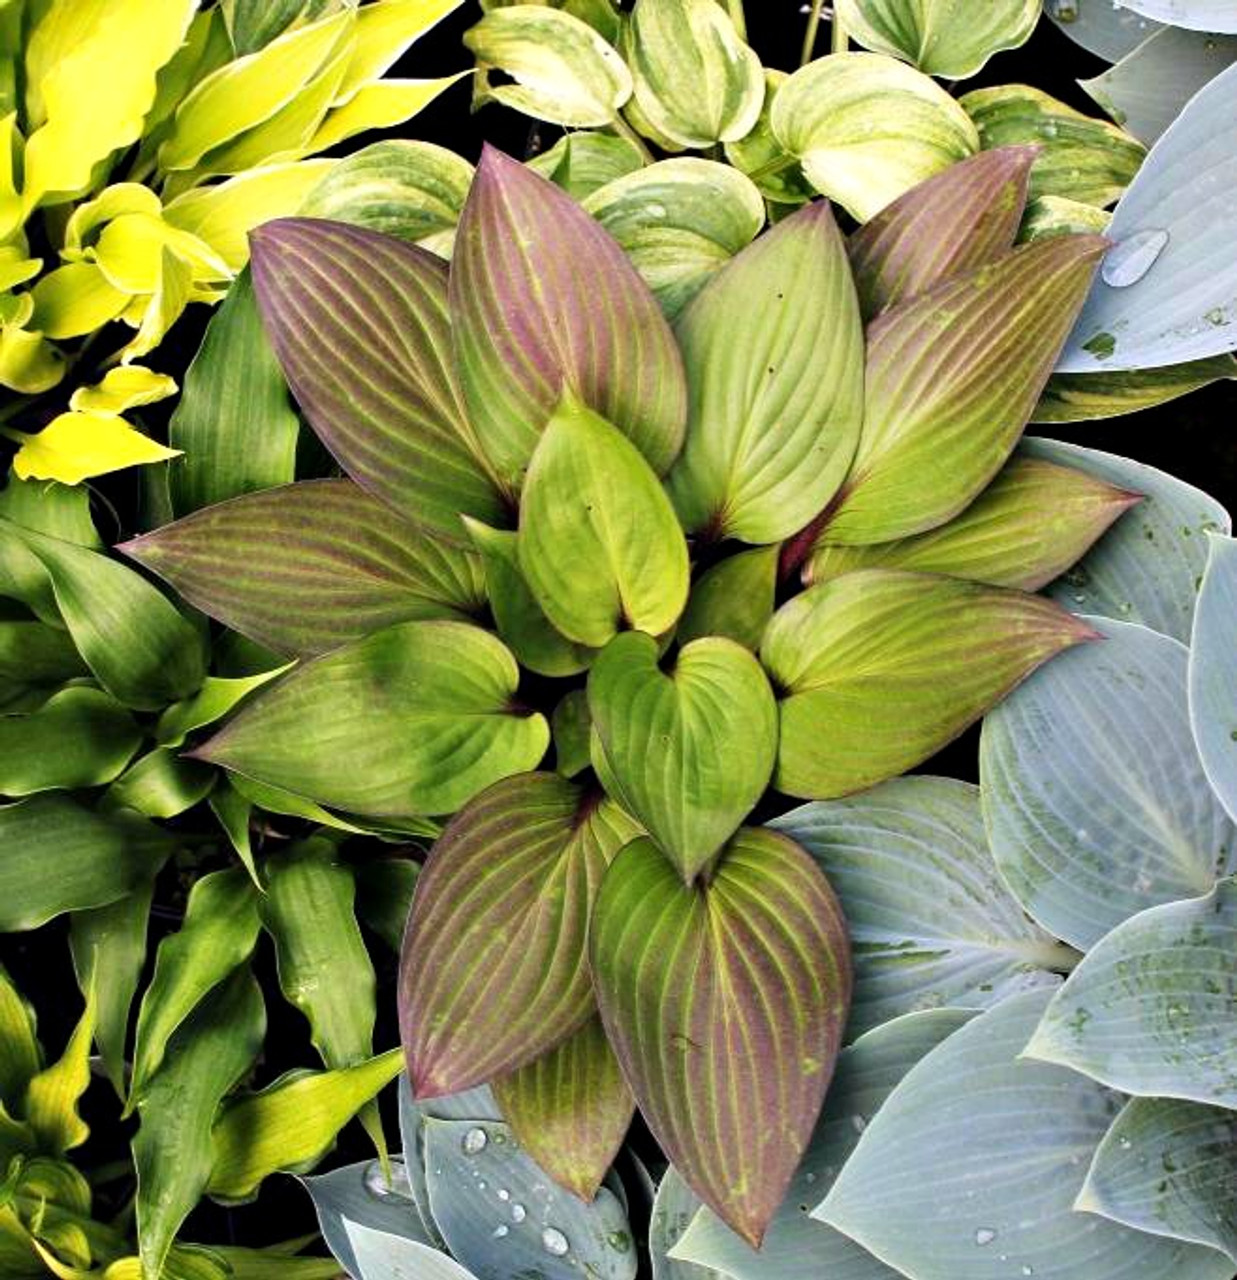 Hostas For Sale >> First Blush Hosta Pp28920 4 5 Inch Container New Hampshire Hostas